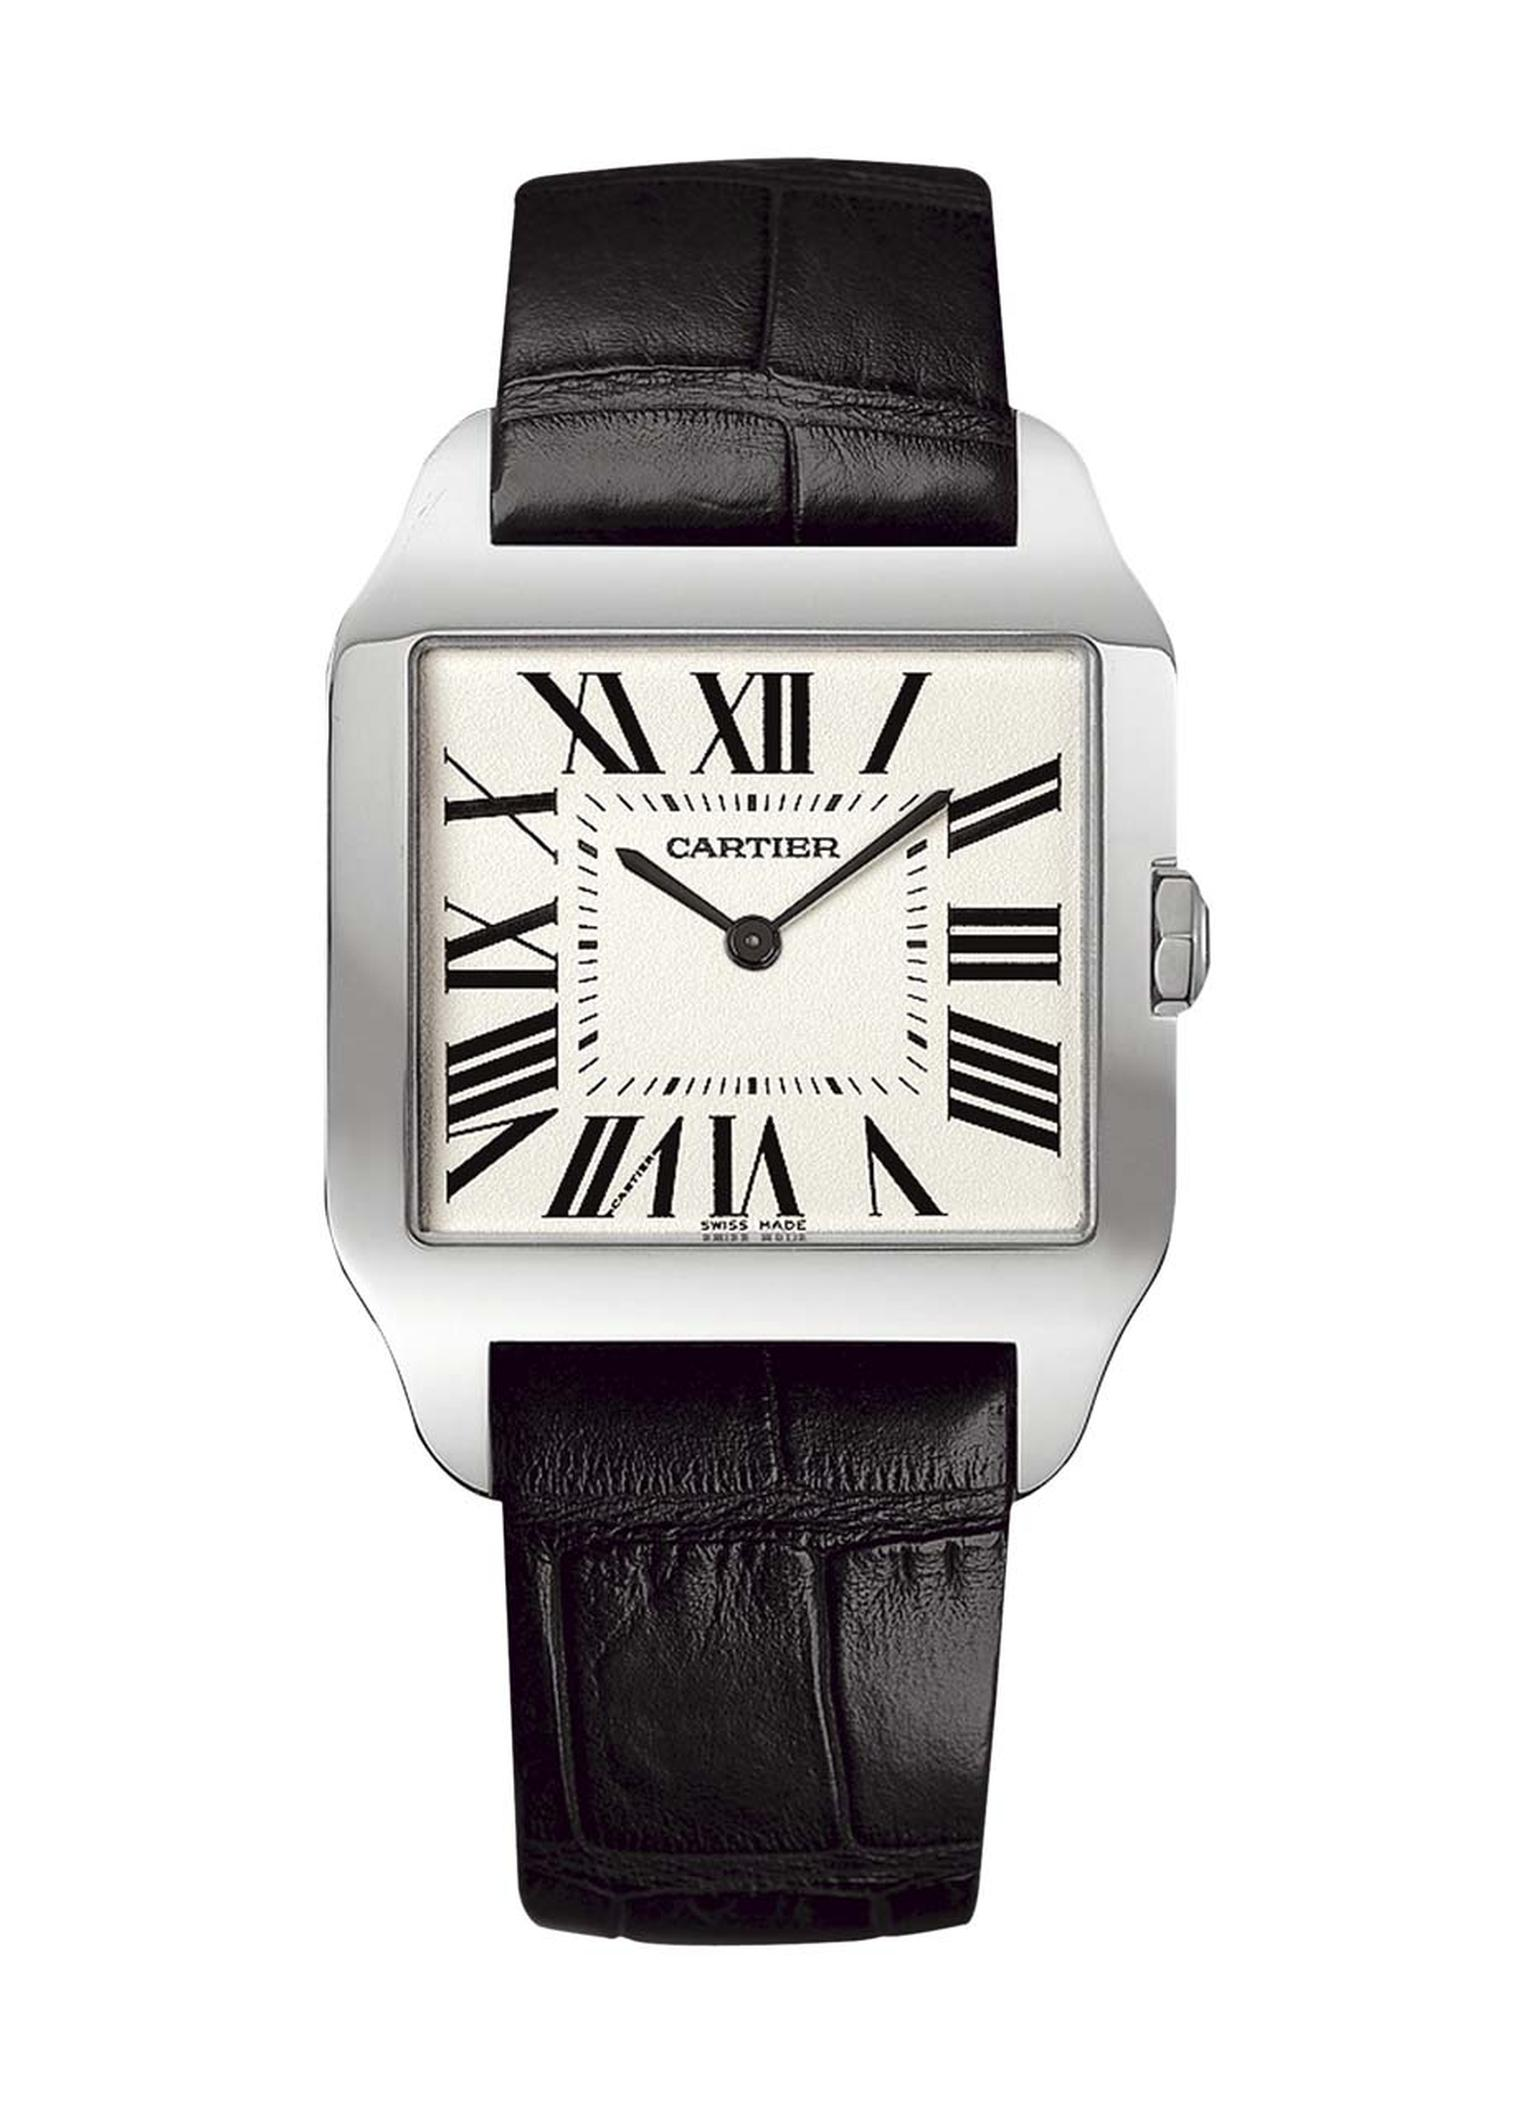 A classic Cartier Tank watch for men is one of the cornerstones of the brand's 110 history of watchmaking.